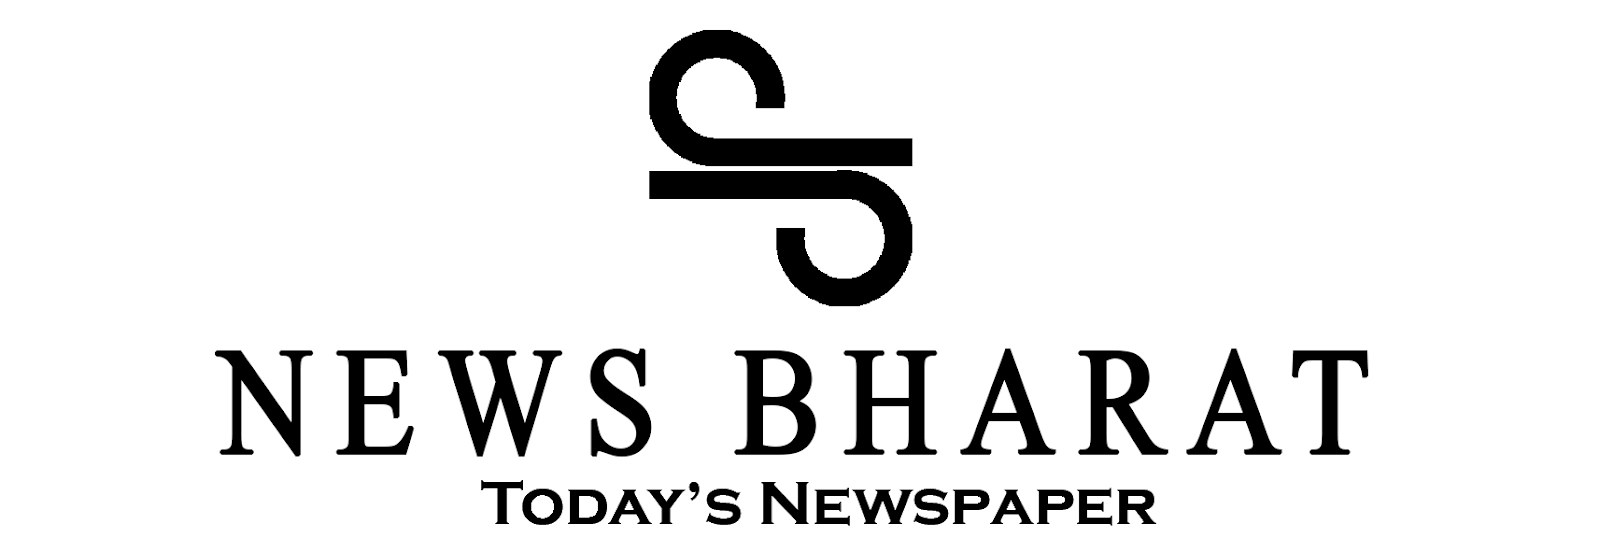 Newsbharat.in | Check Out the Today's Trending News Headlines